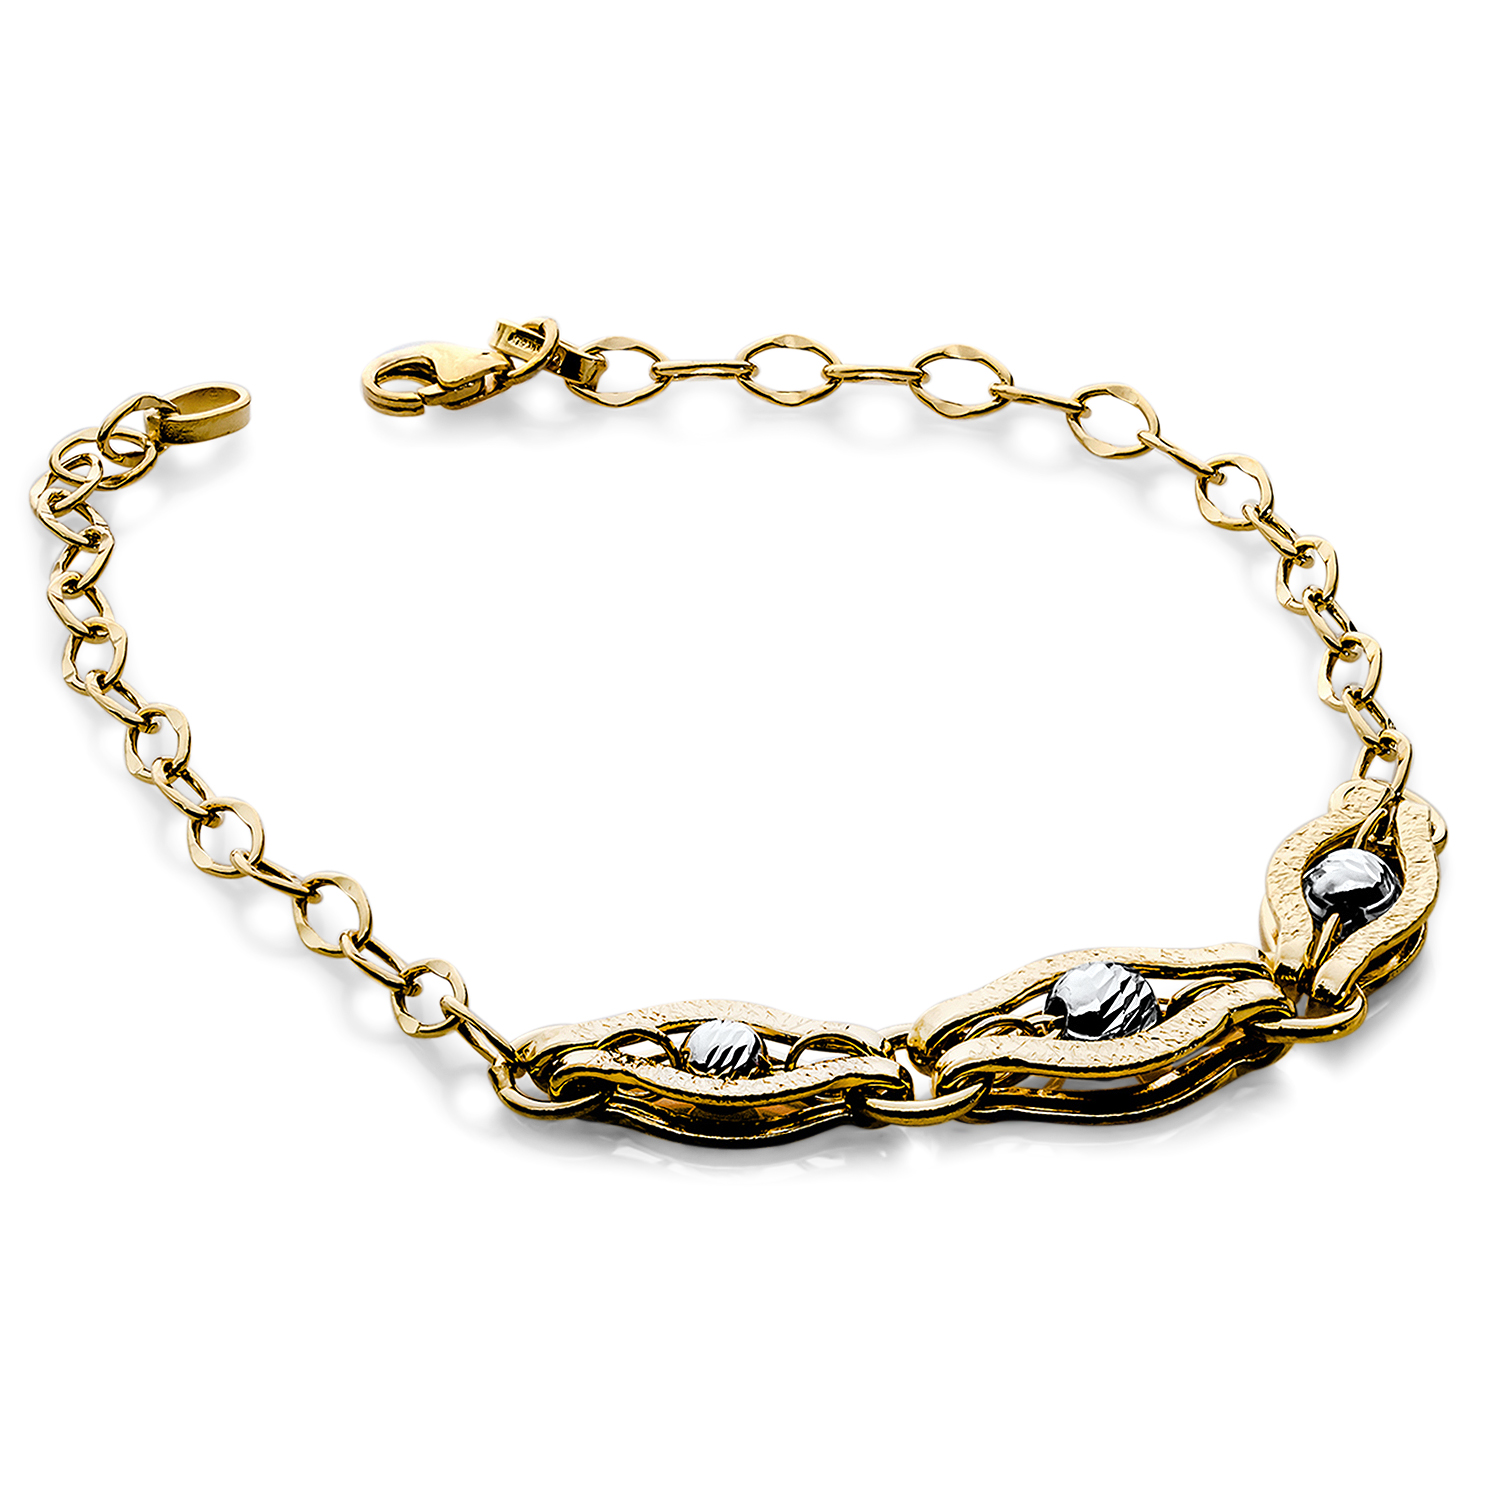 14k Gold Two-Tone Polished and Diamond-Cut Bracelet